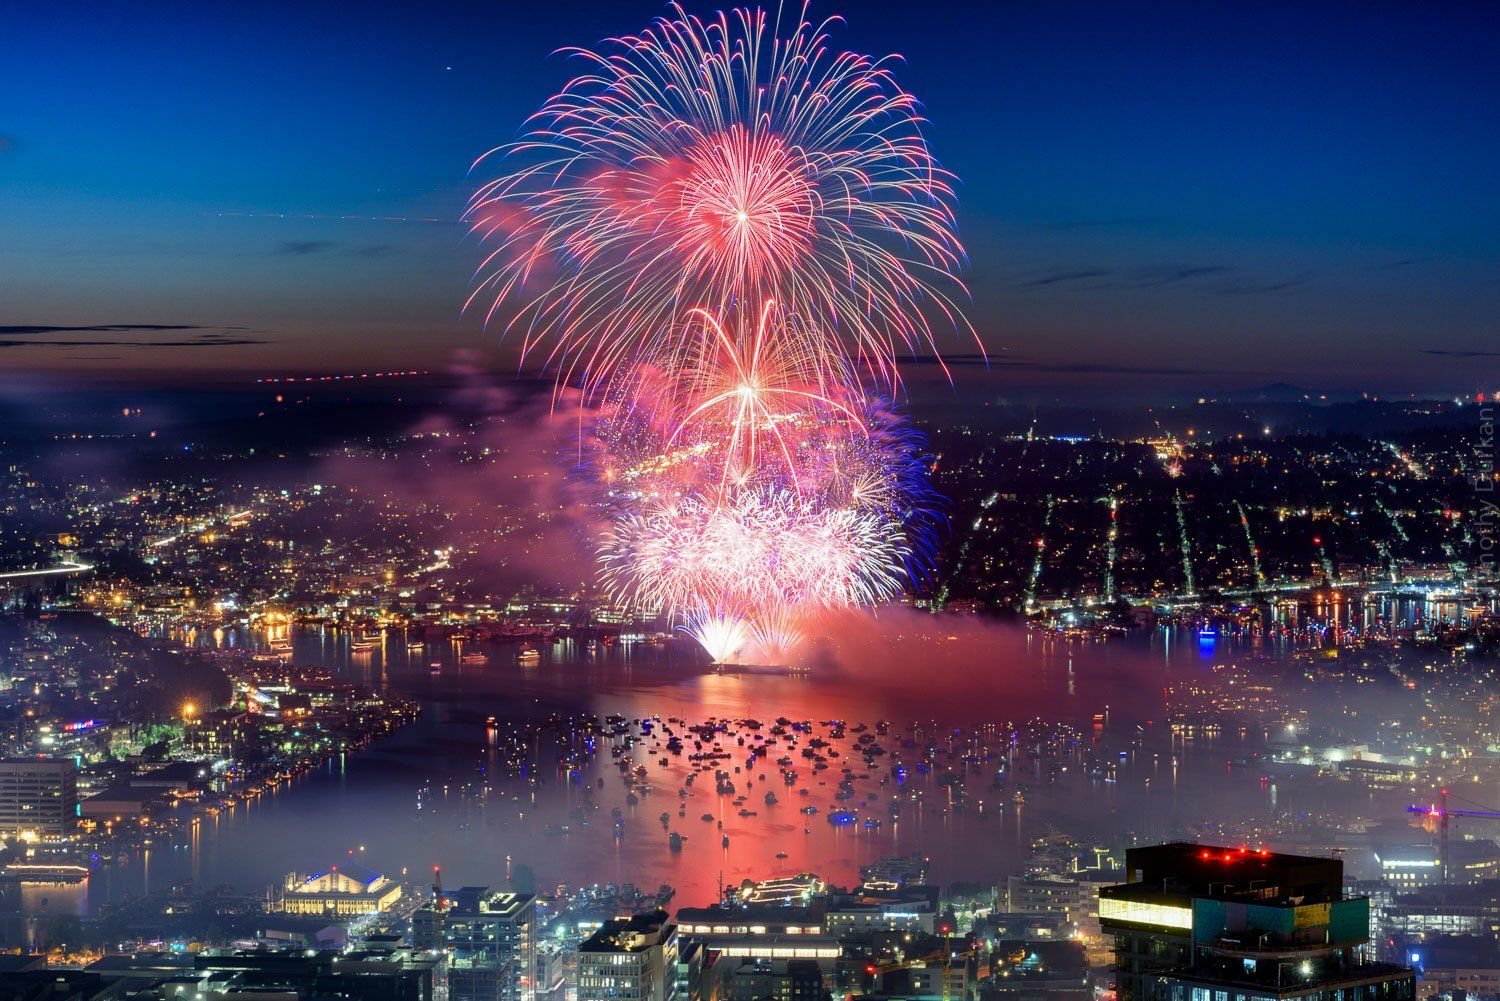 Seattle fireworks, July 4, 2017 - Tim Durkan Photography